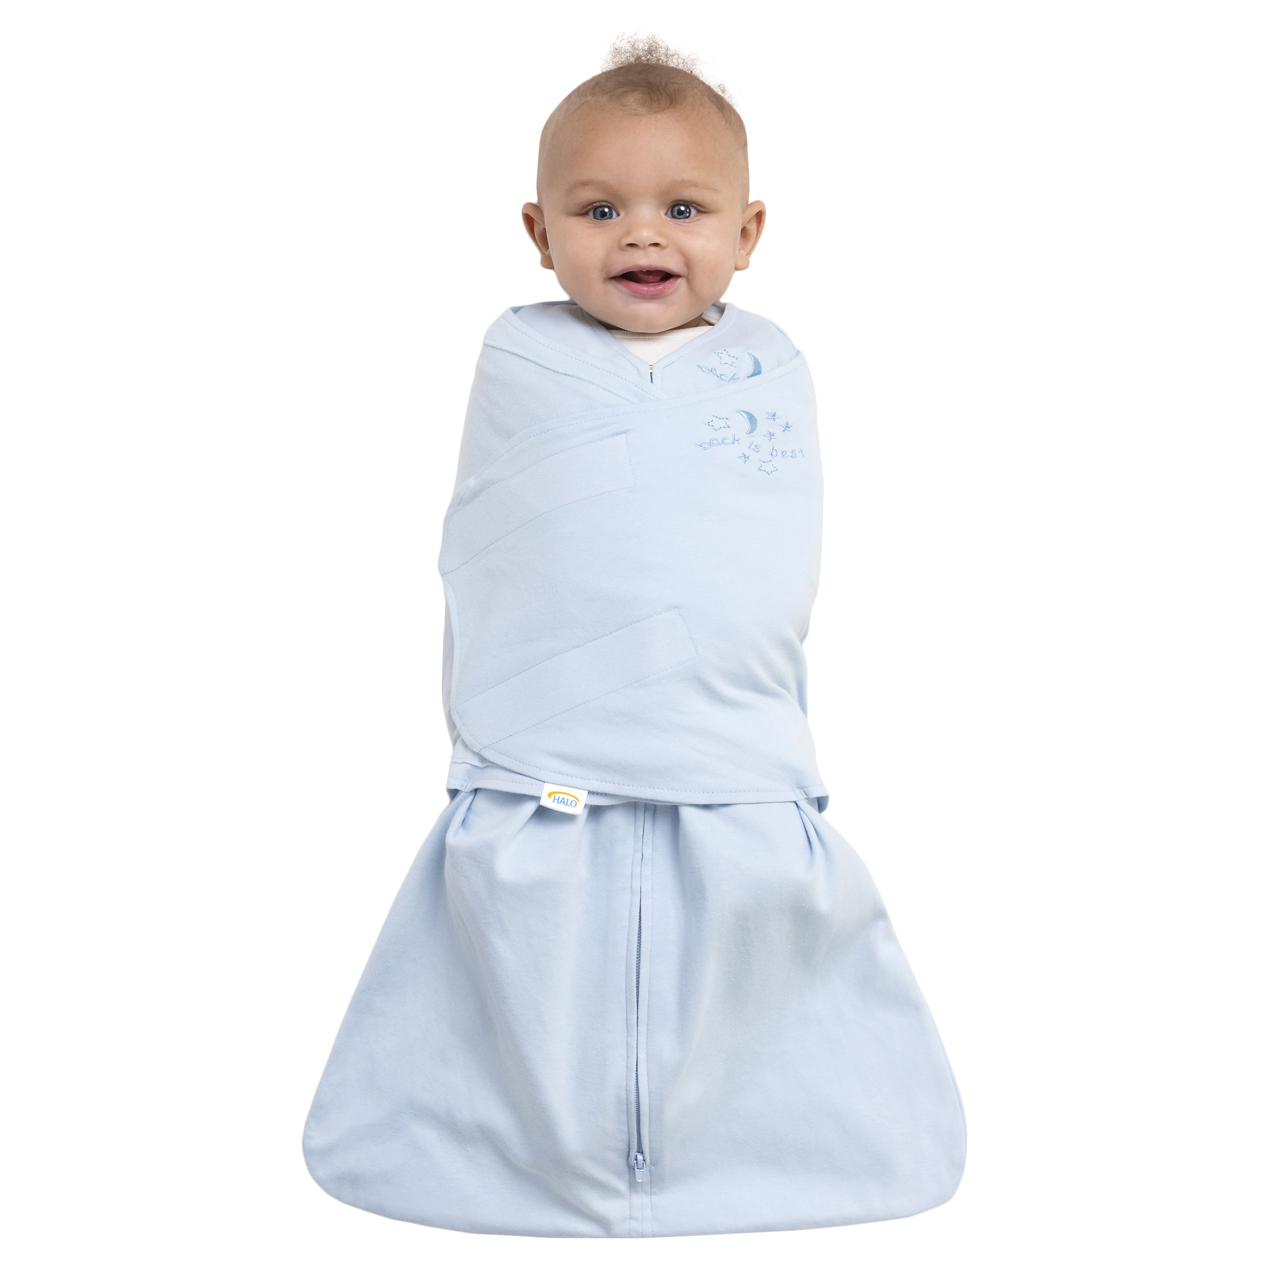 SWMC Auxiliary Volunteers Supports Safe Swaddling